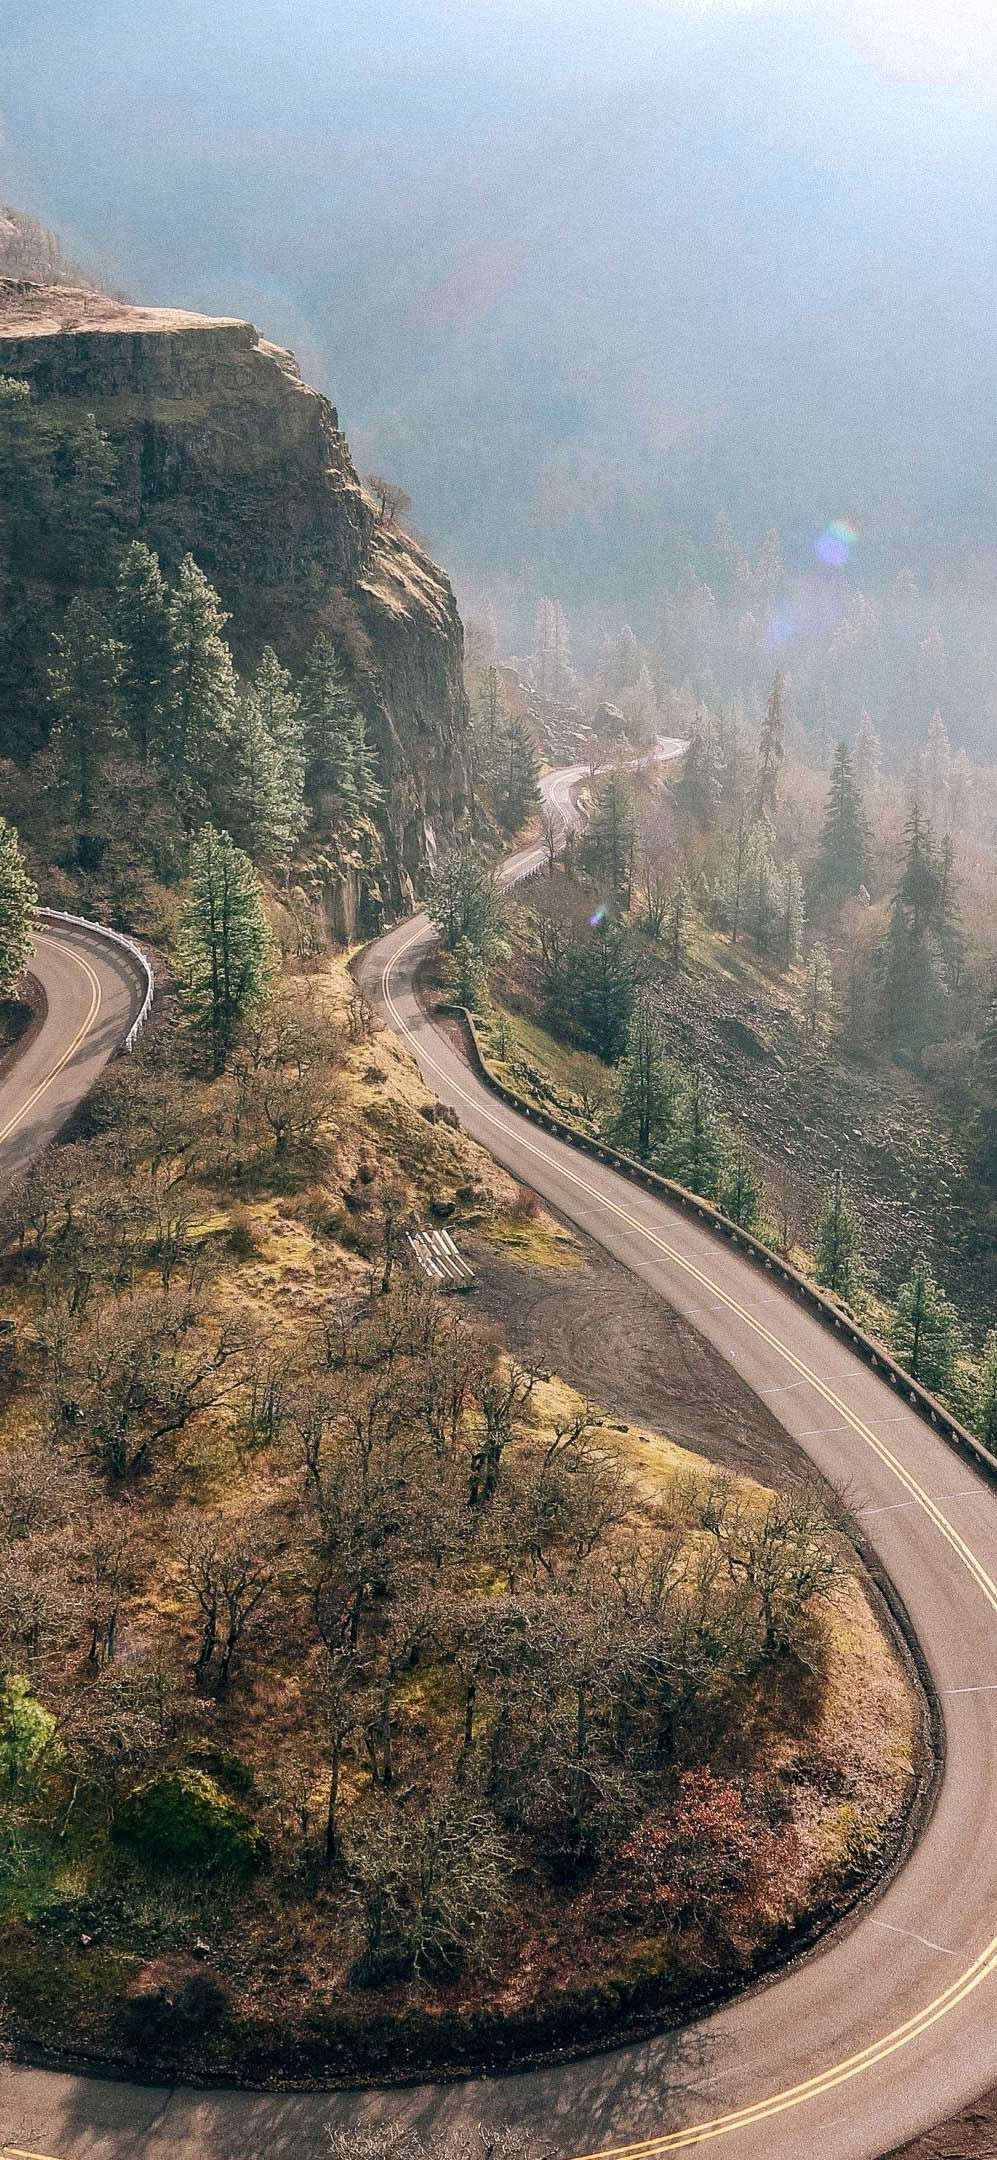 Pin On Desserts Sweet Tooth Hd wallpaper mountain road aerial view